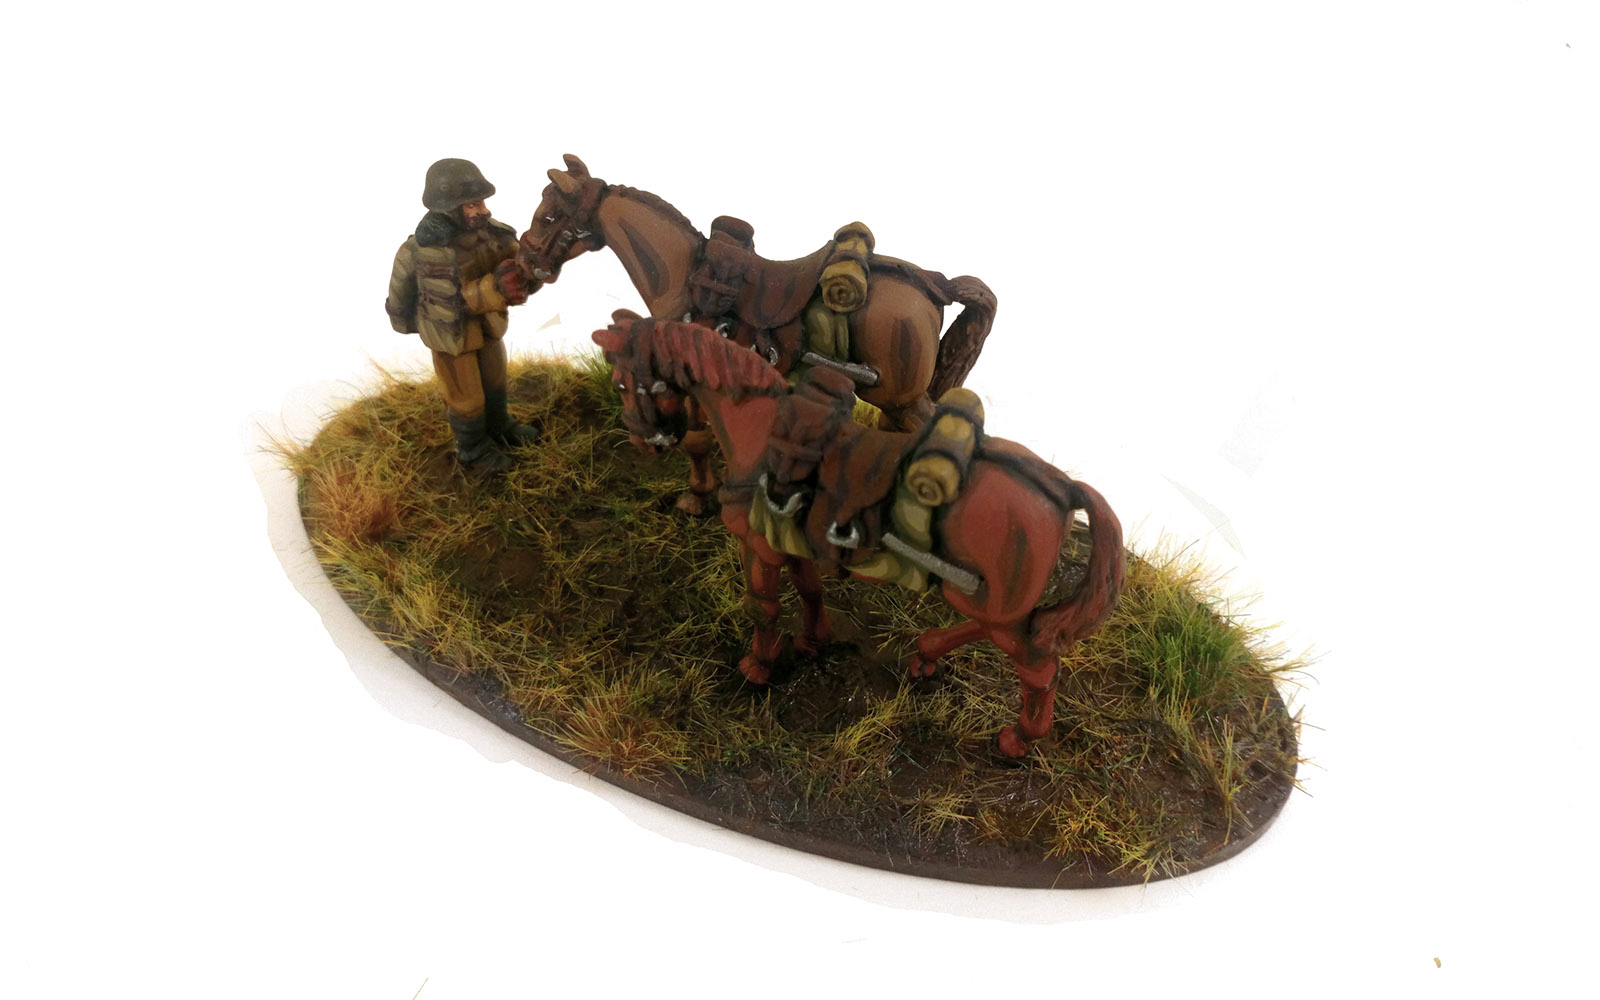 Stretch Goal #3 - Hungarian Huszár Horse Holder (Great Escape Games) HUN212